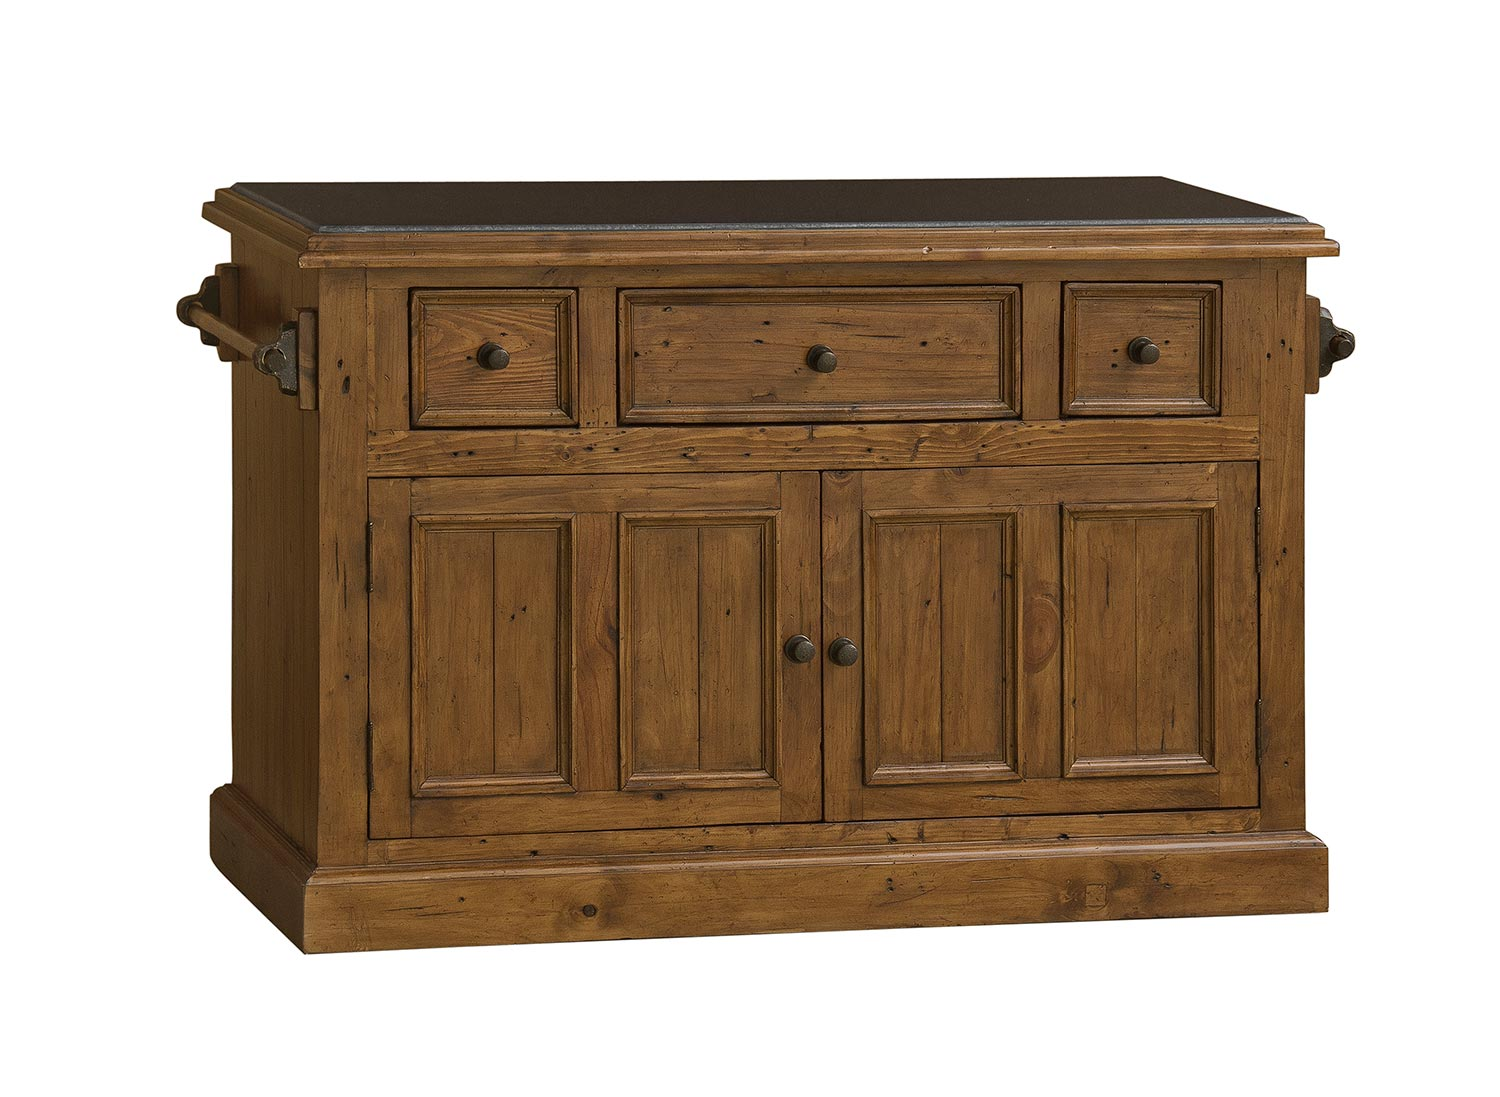 Hillsdale Tuscan Retreat Large Granite Top Kitchen Island - Antique Pine